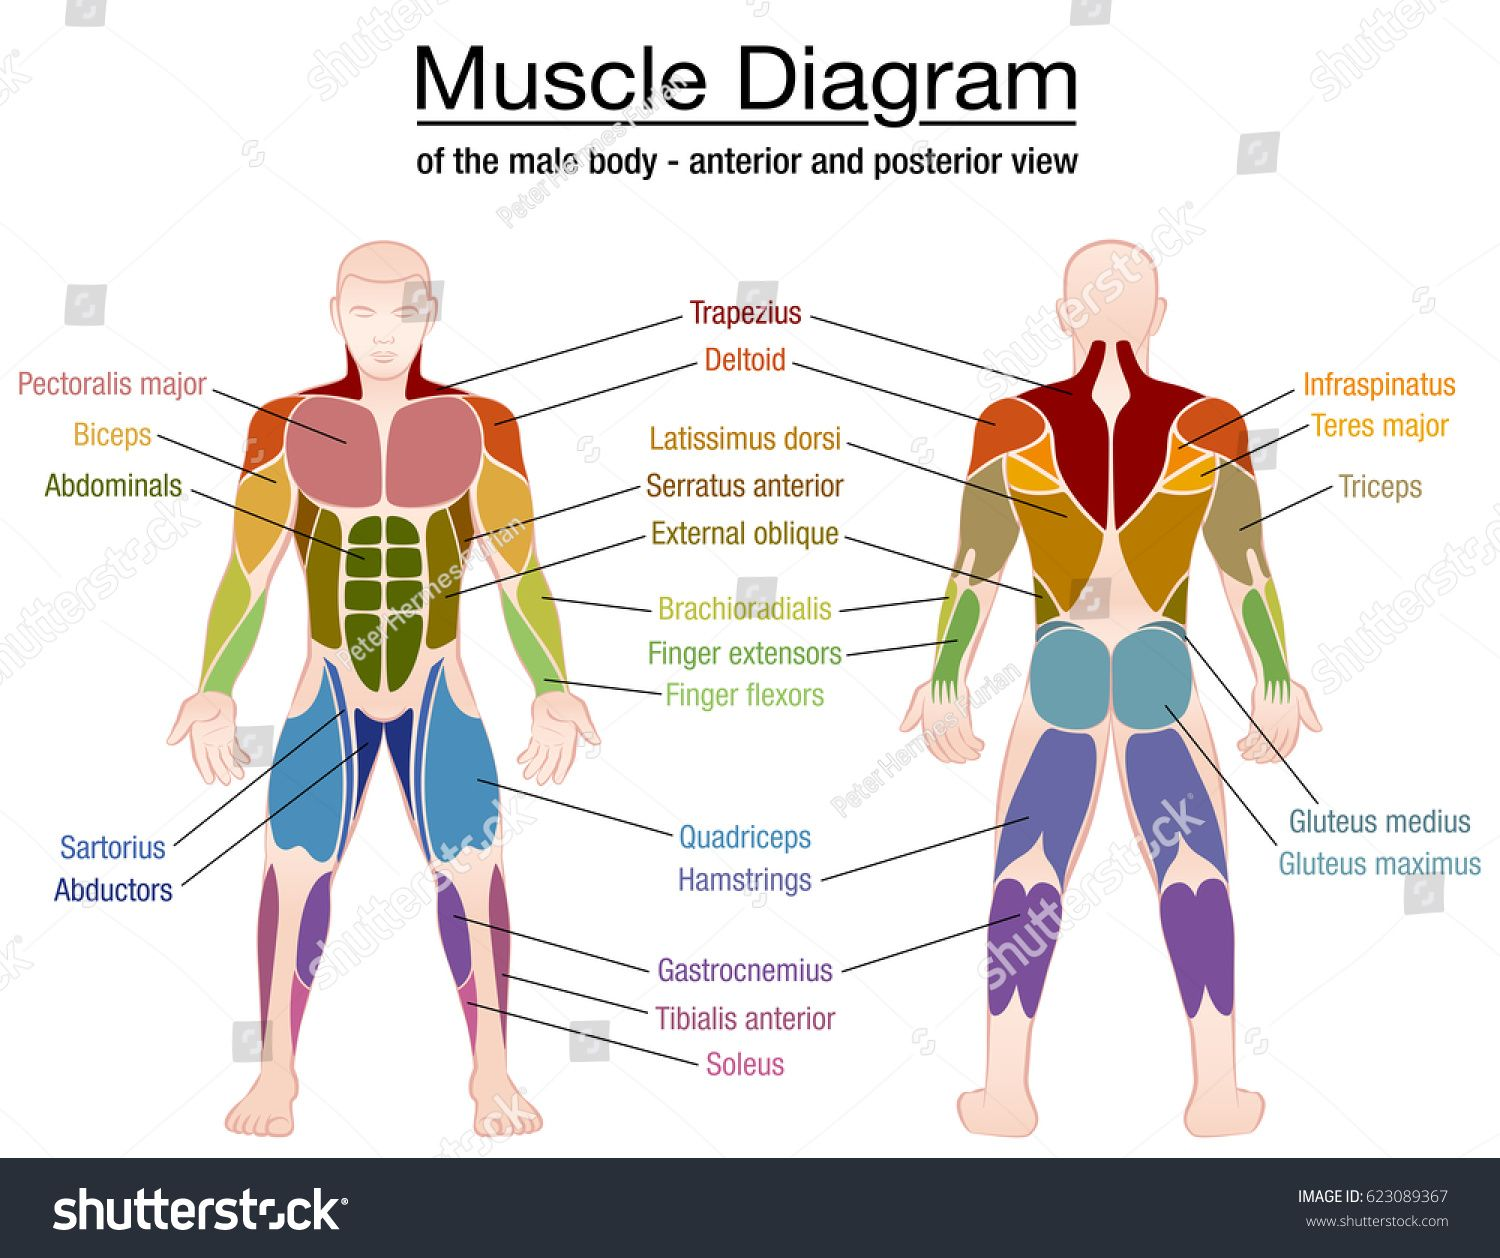 Muscle Diagram Most Important Muscles Of An Athletic Male Body